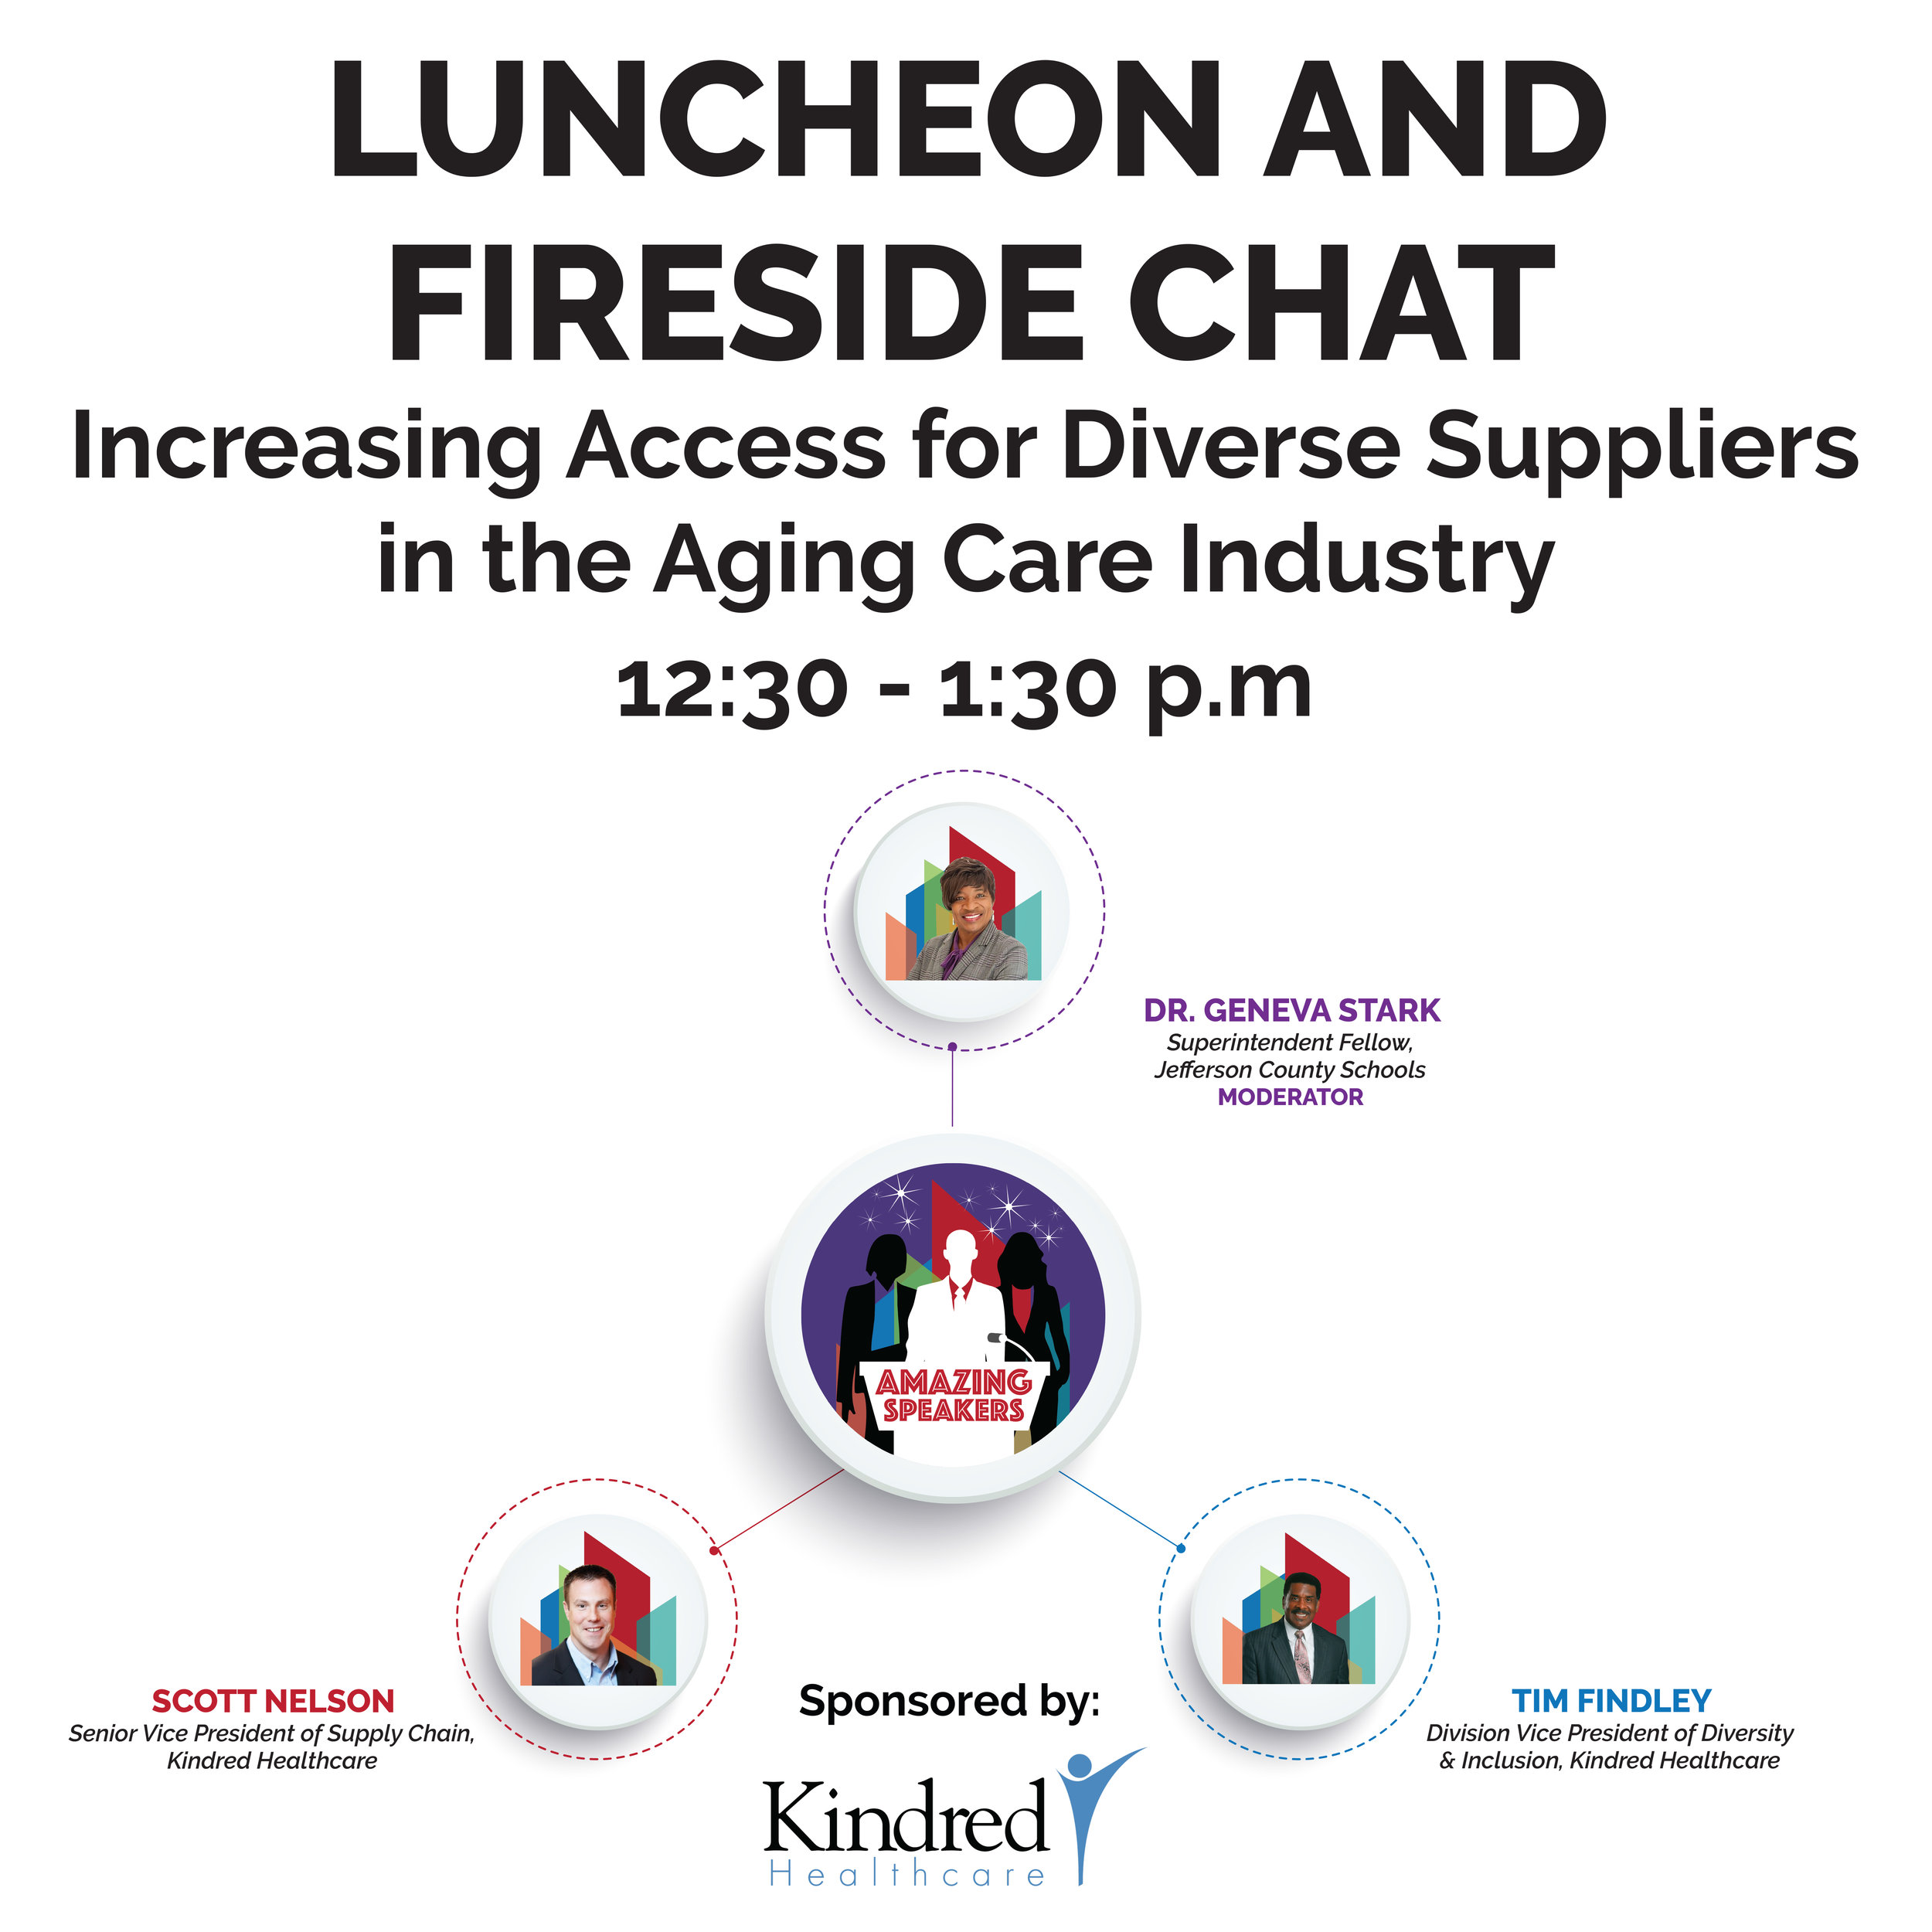 Luncheon and Fire Side Chat - Increasing Access for Diverse Suppliers in the Aging Care Industry.jpg